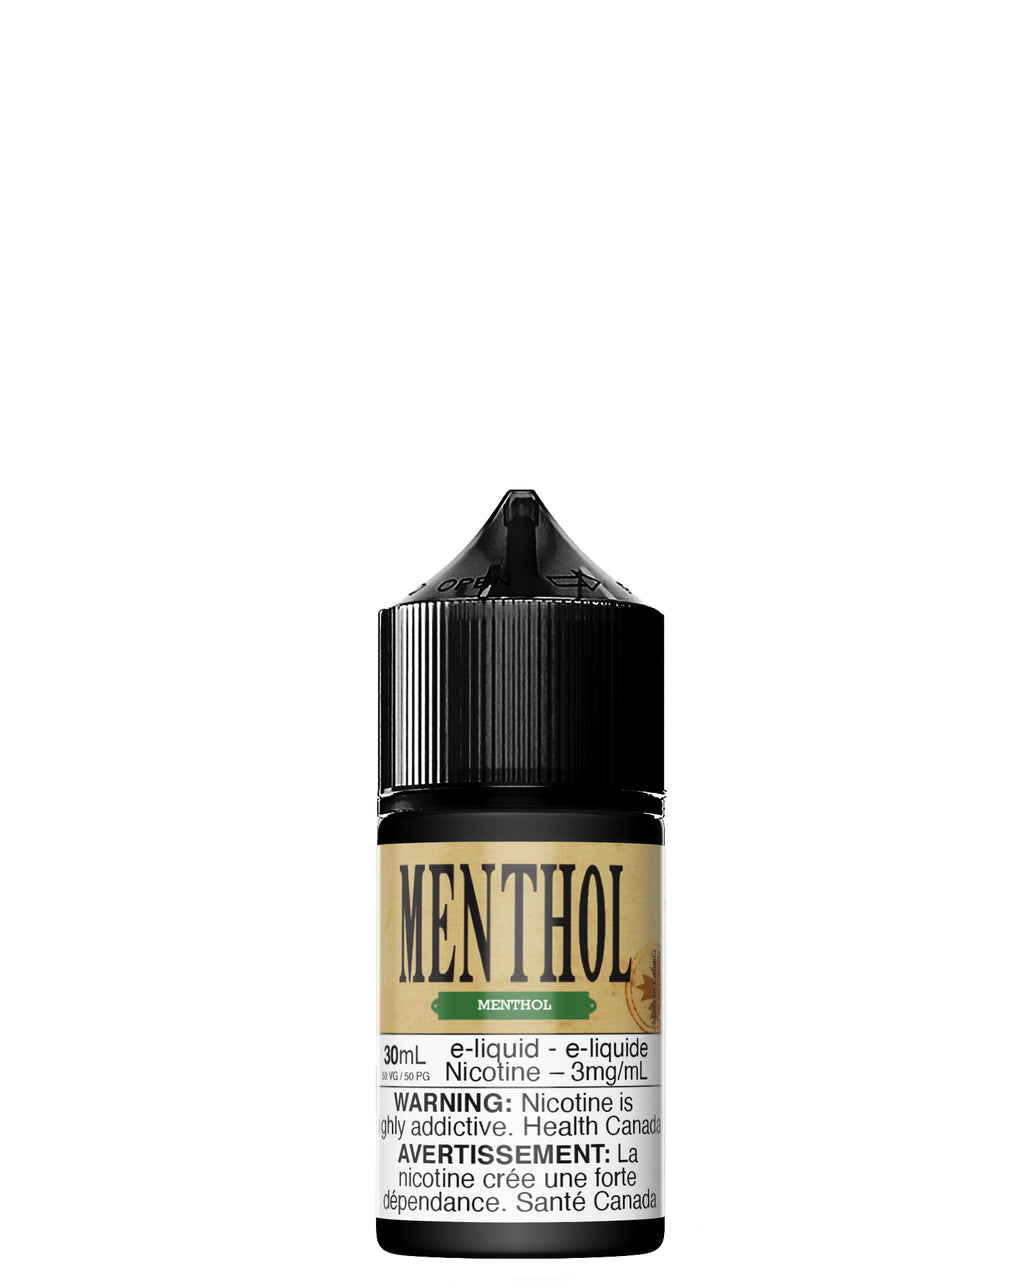 Menthol 30ml by Vapeur Express